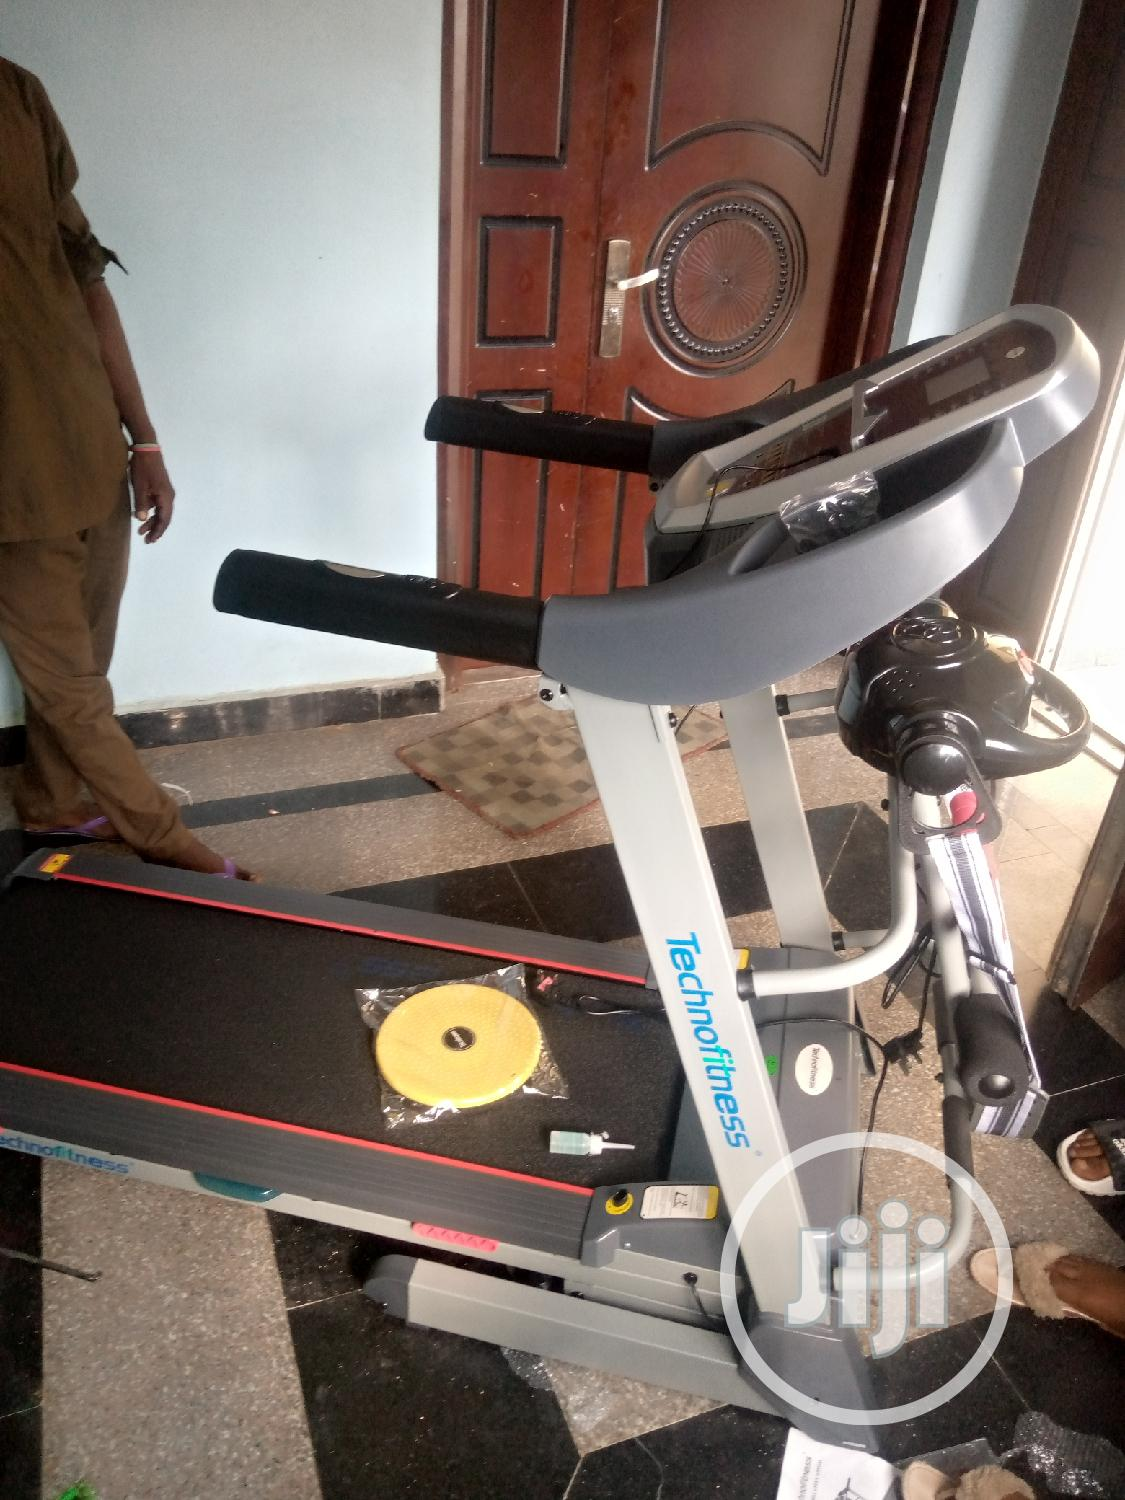 Archive: Technofitness 2.5hp Treadmill With Massager,Dumbbell and Twister